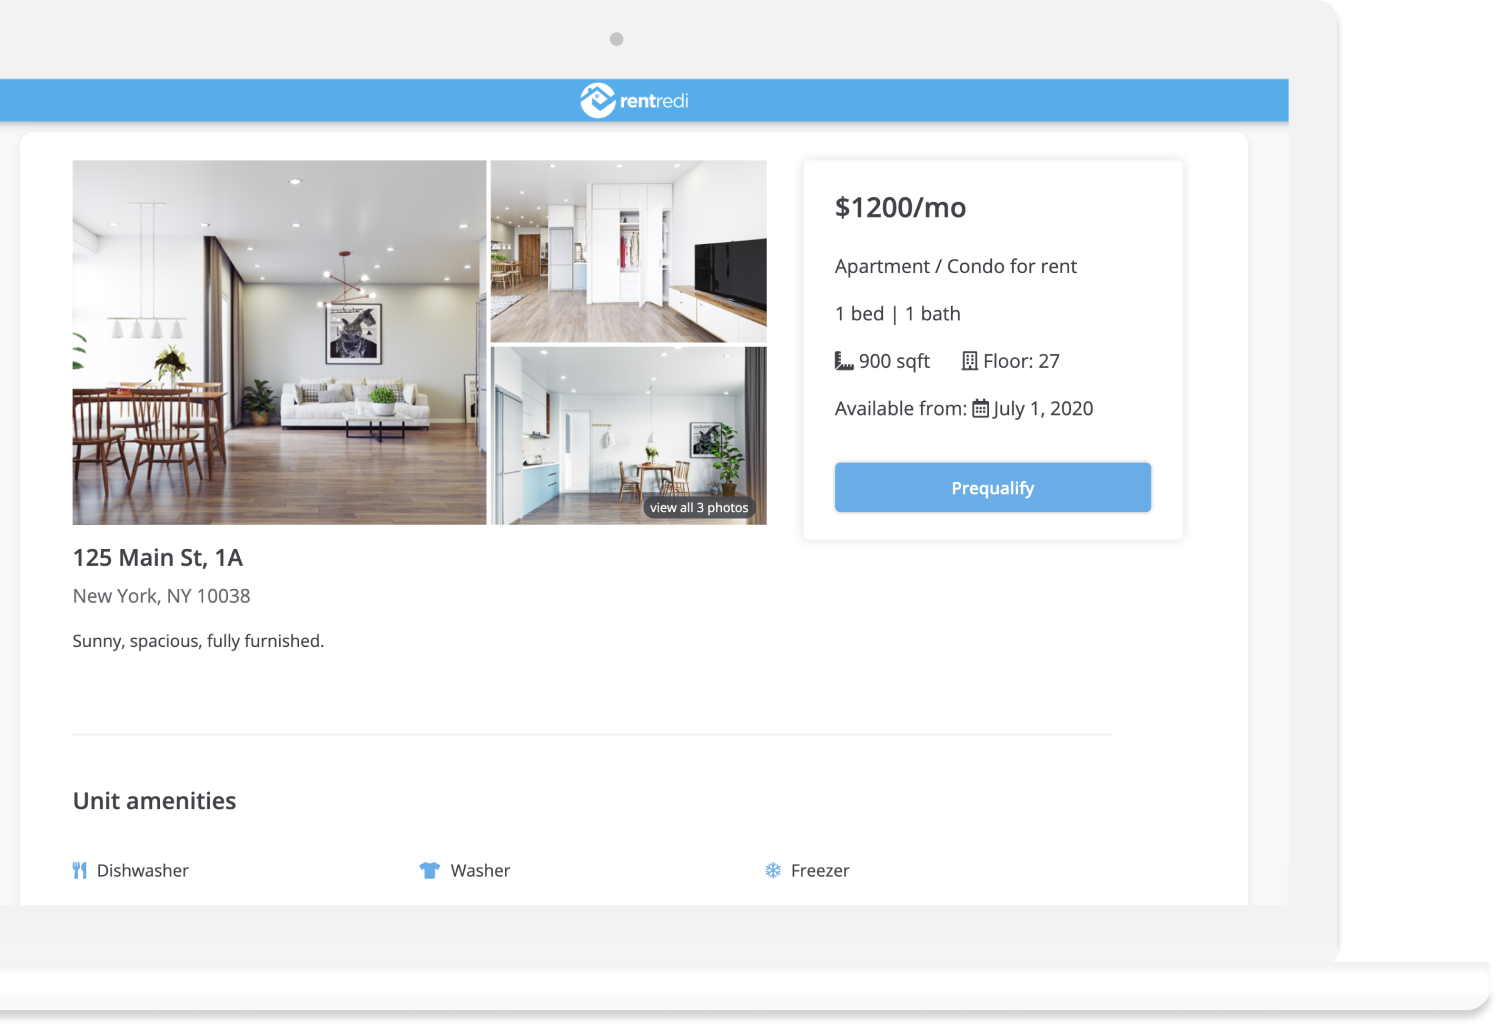 rentredi shareable listing page